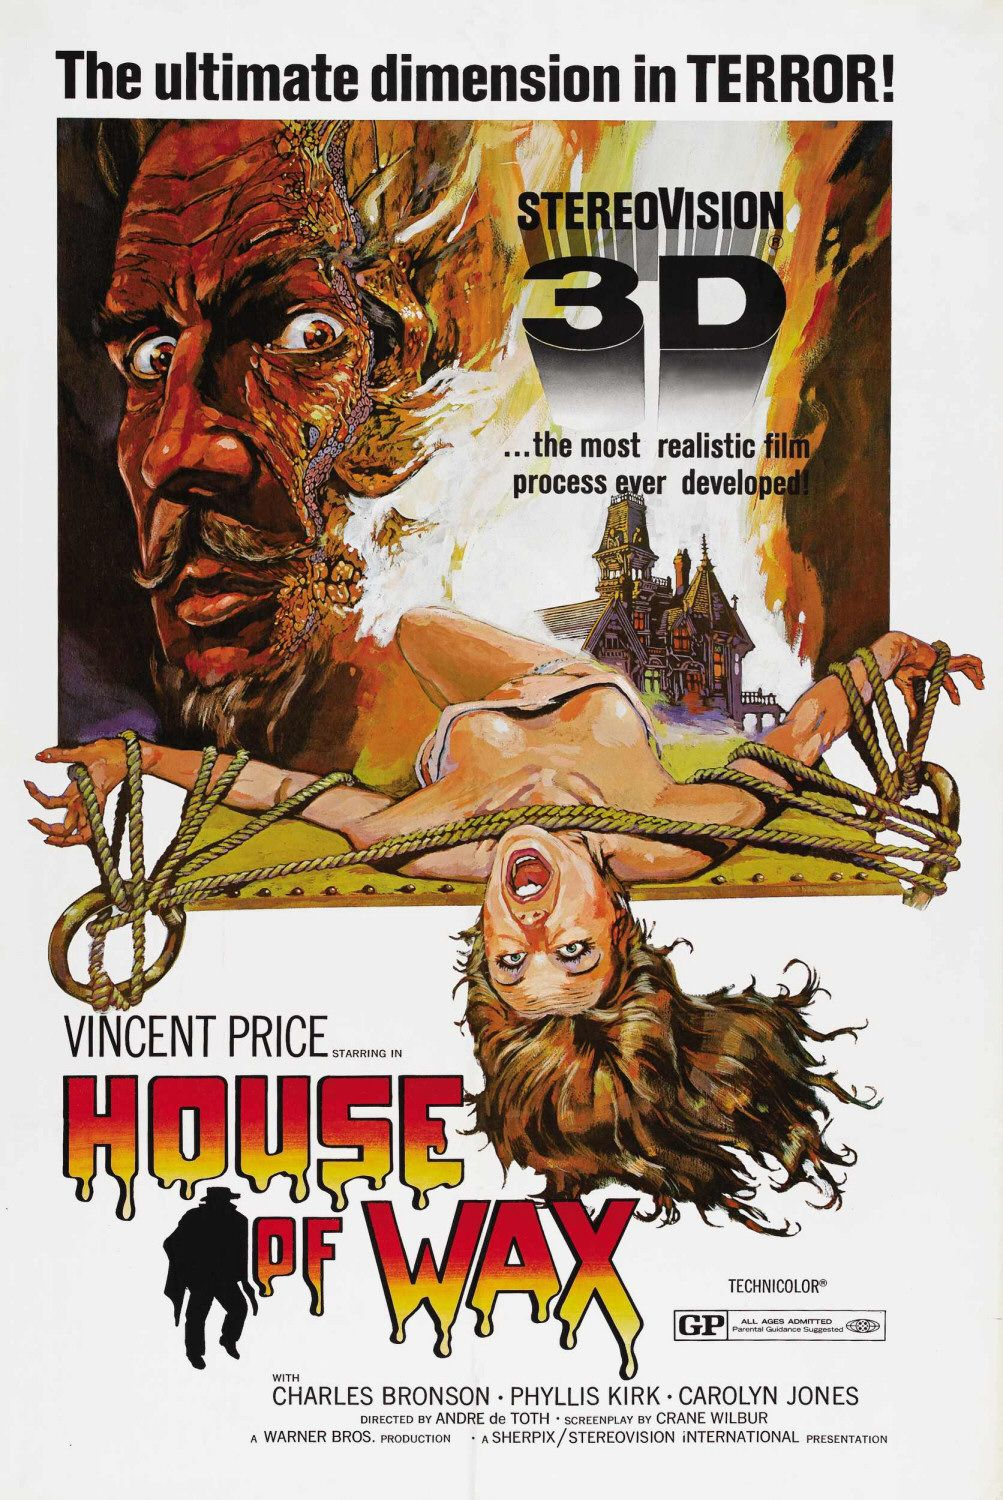 Download wallpaper house of wax, house of wax, film, movies free.